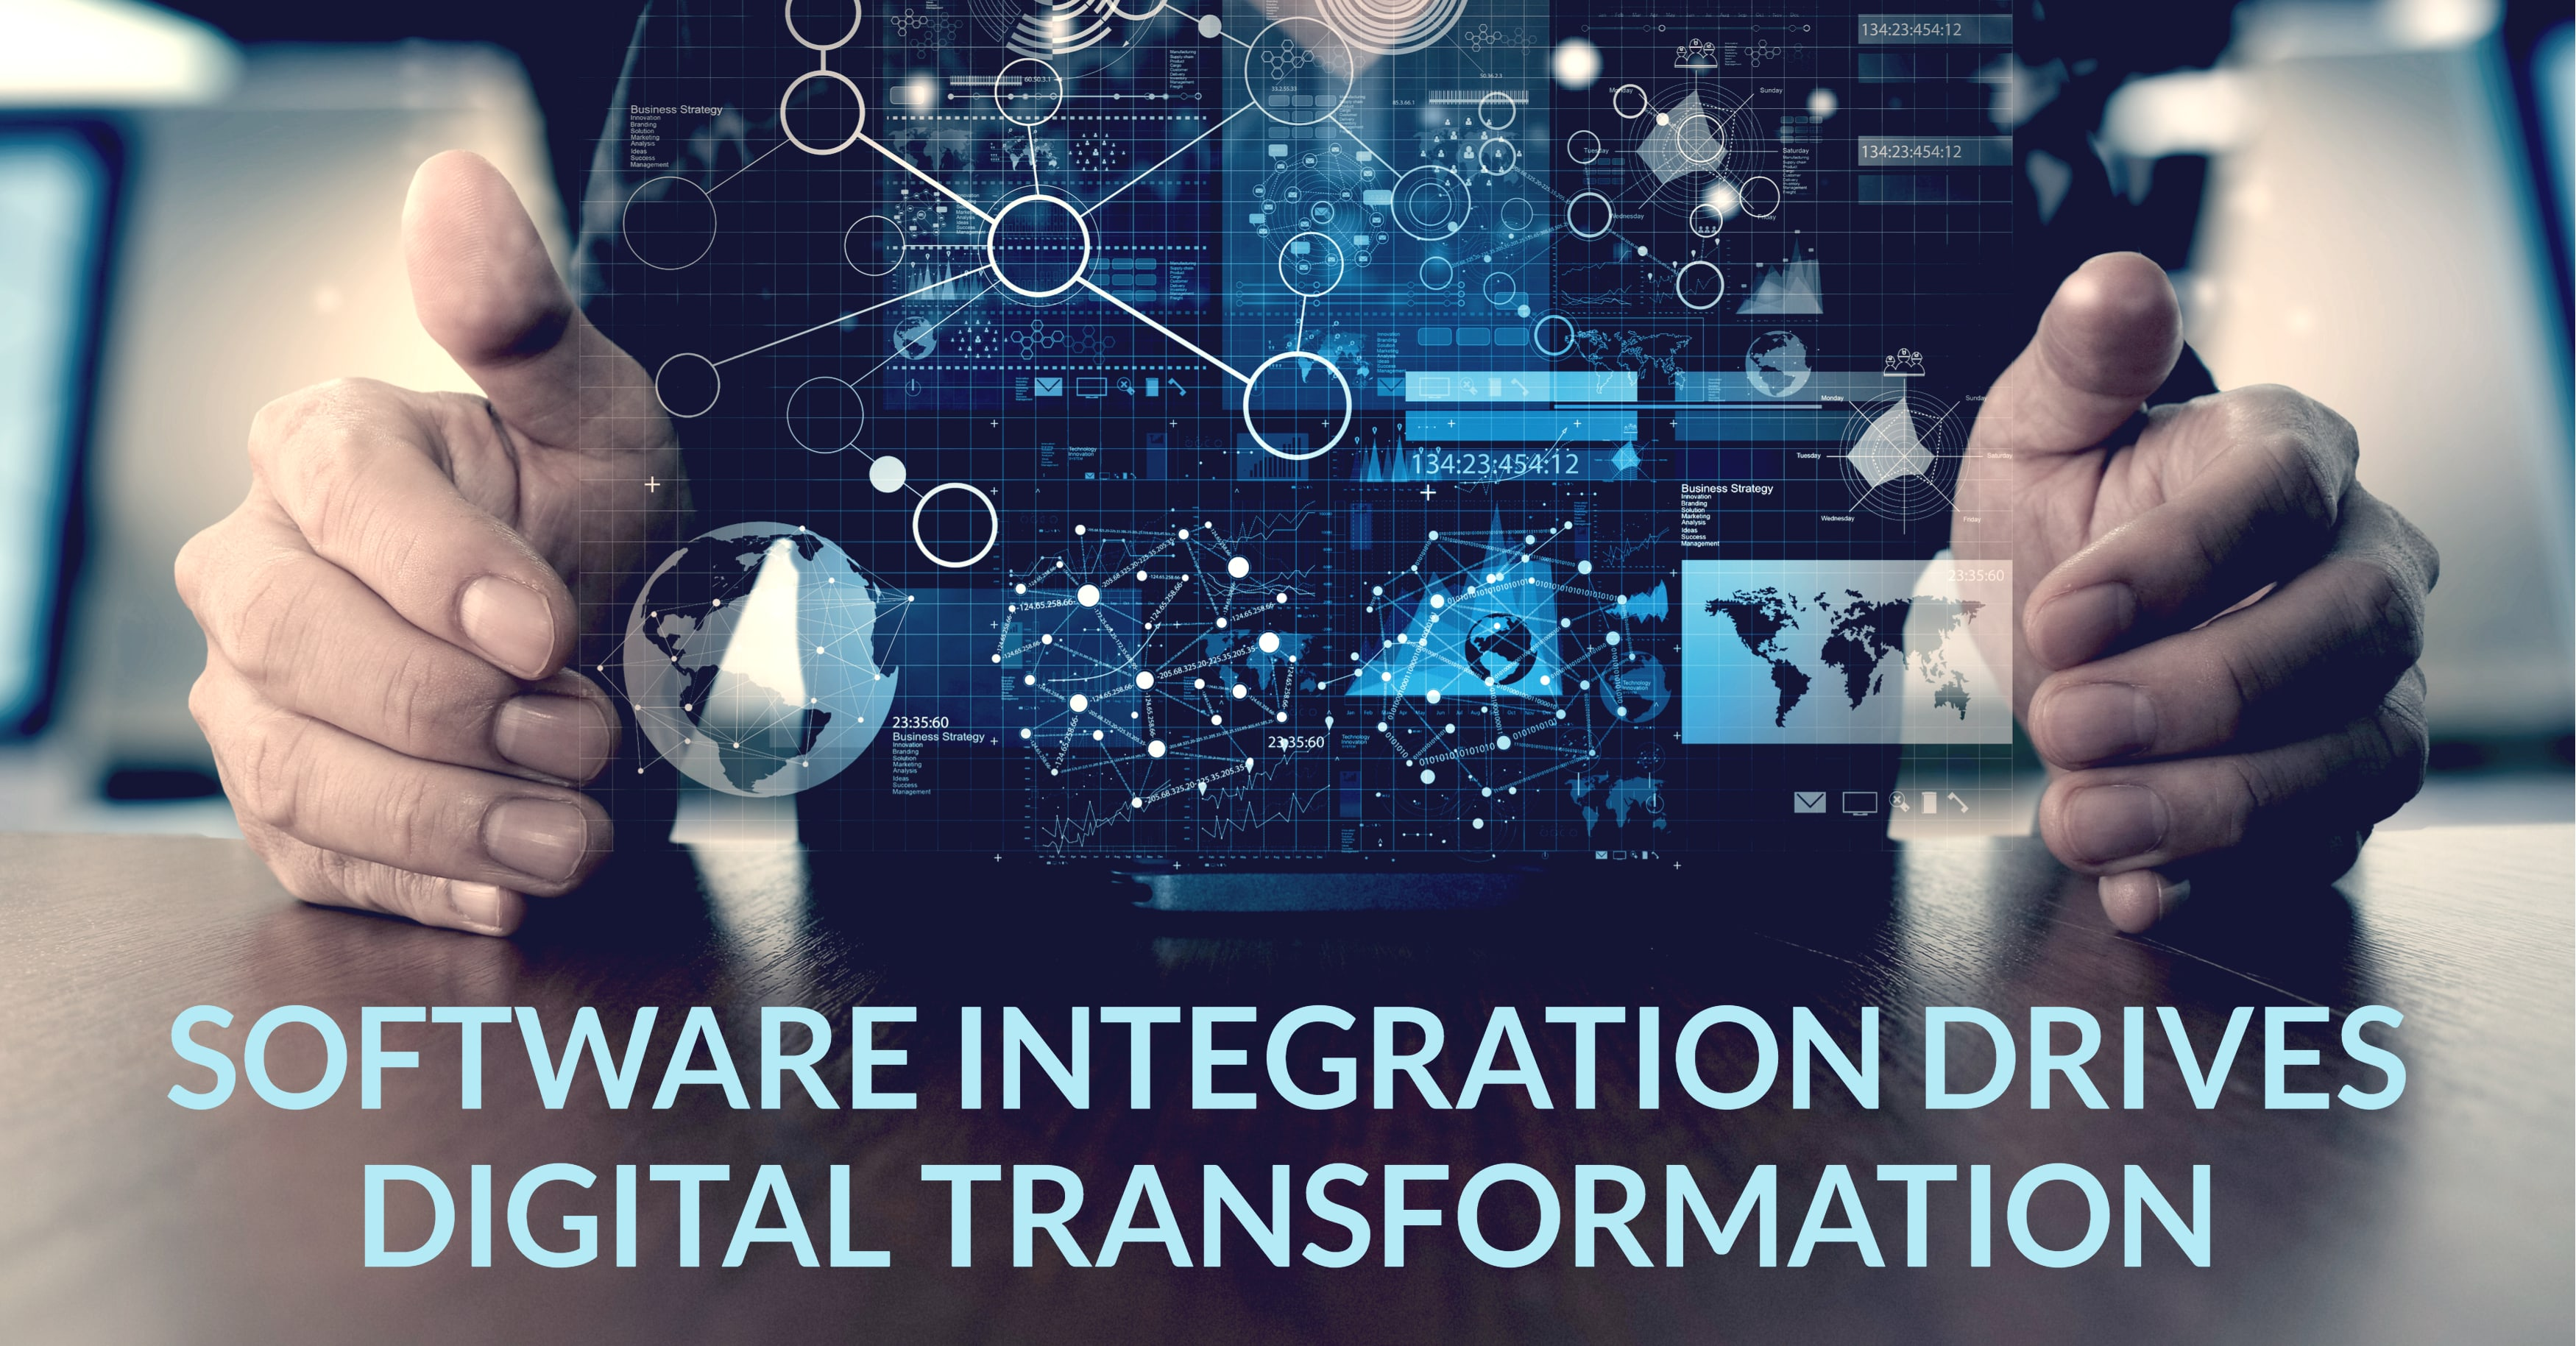 Software Integration Digital Transformation